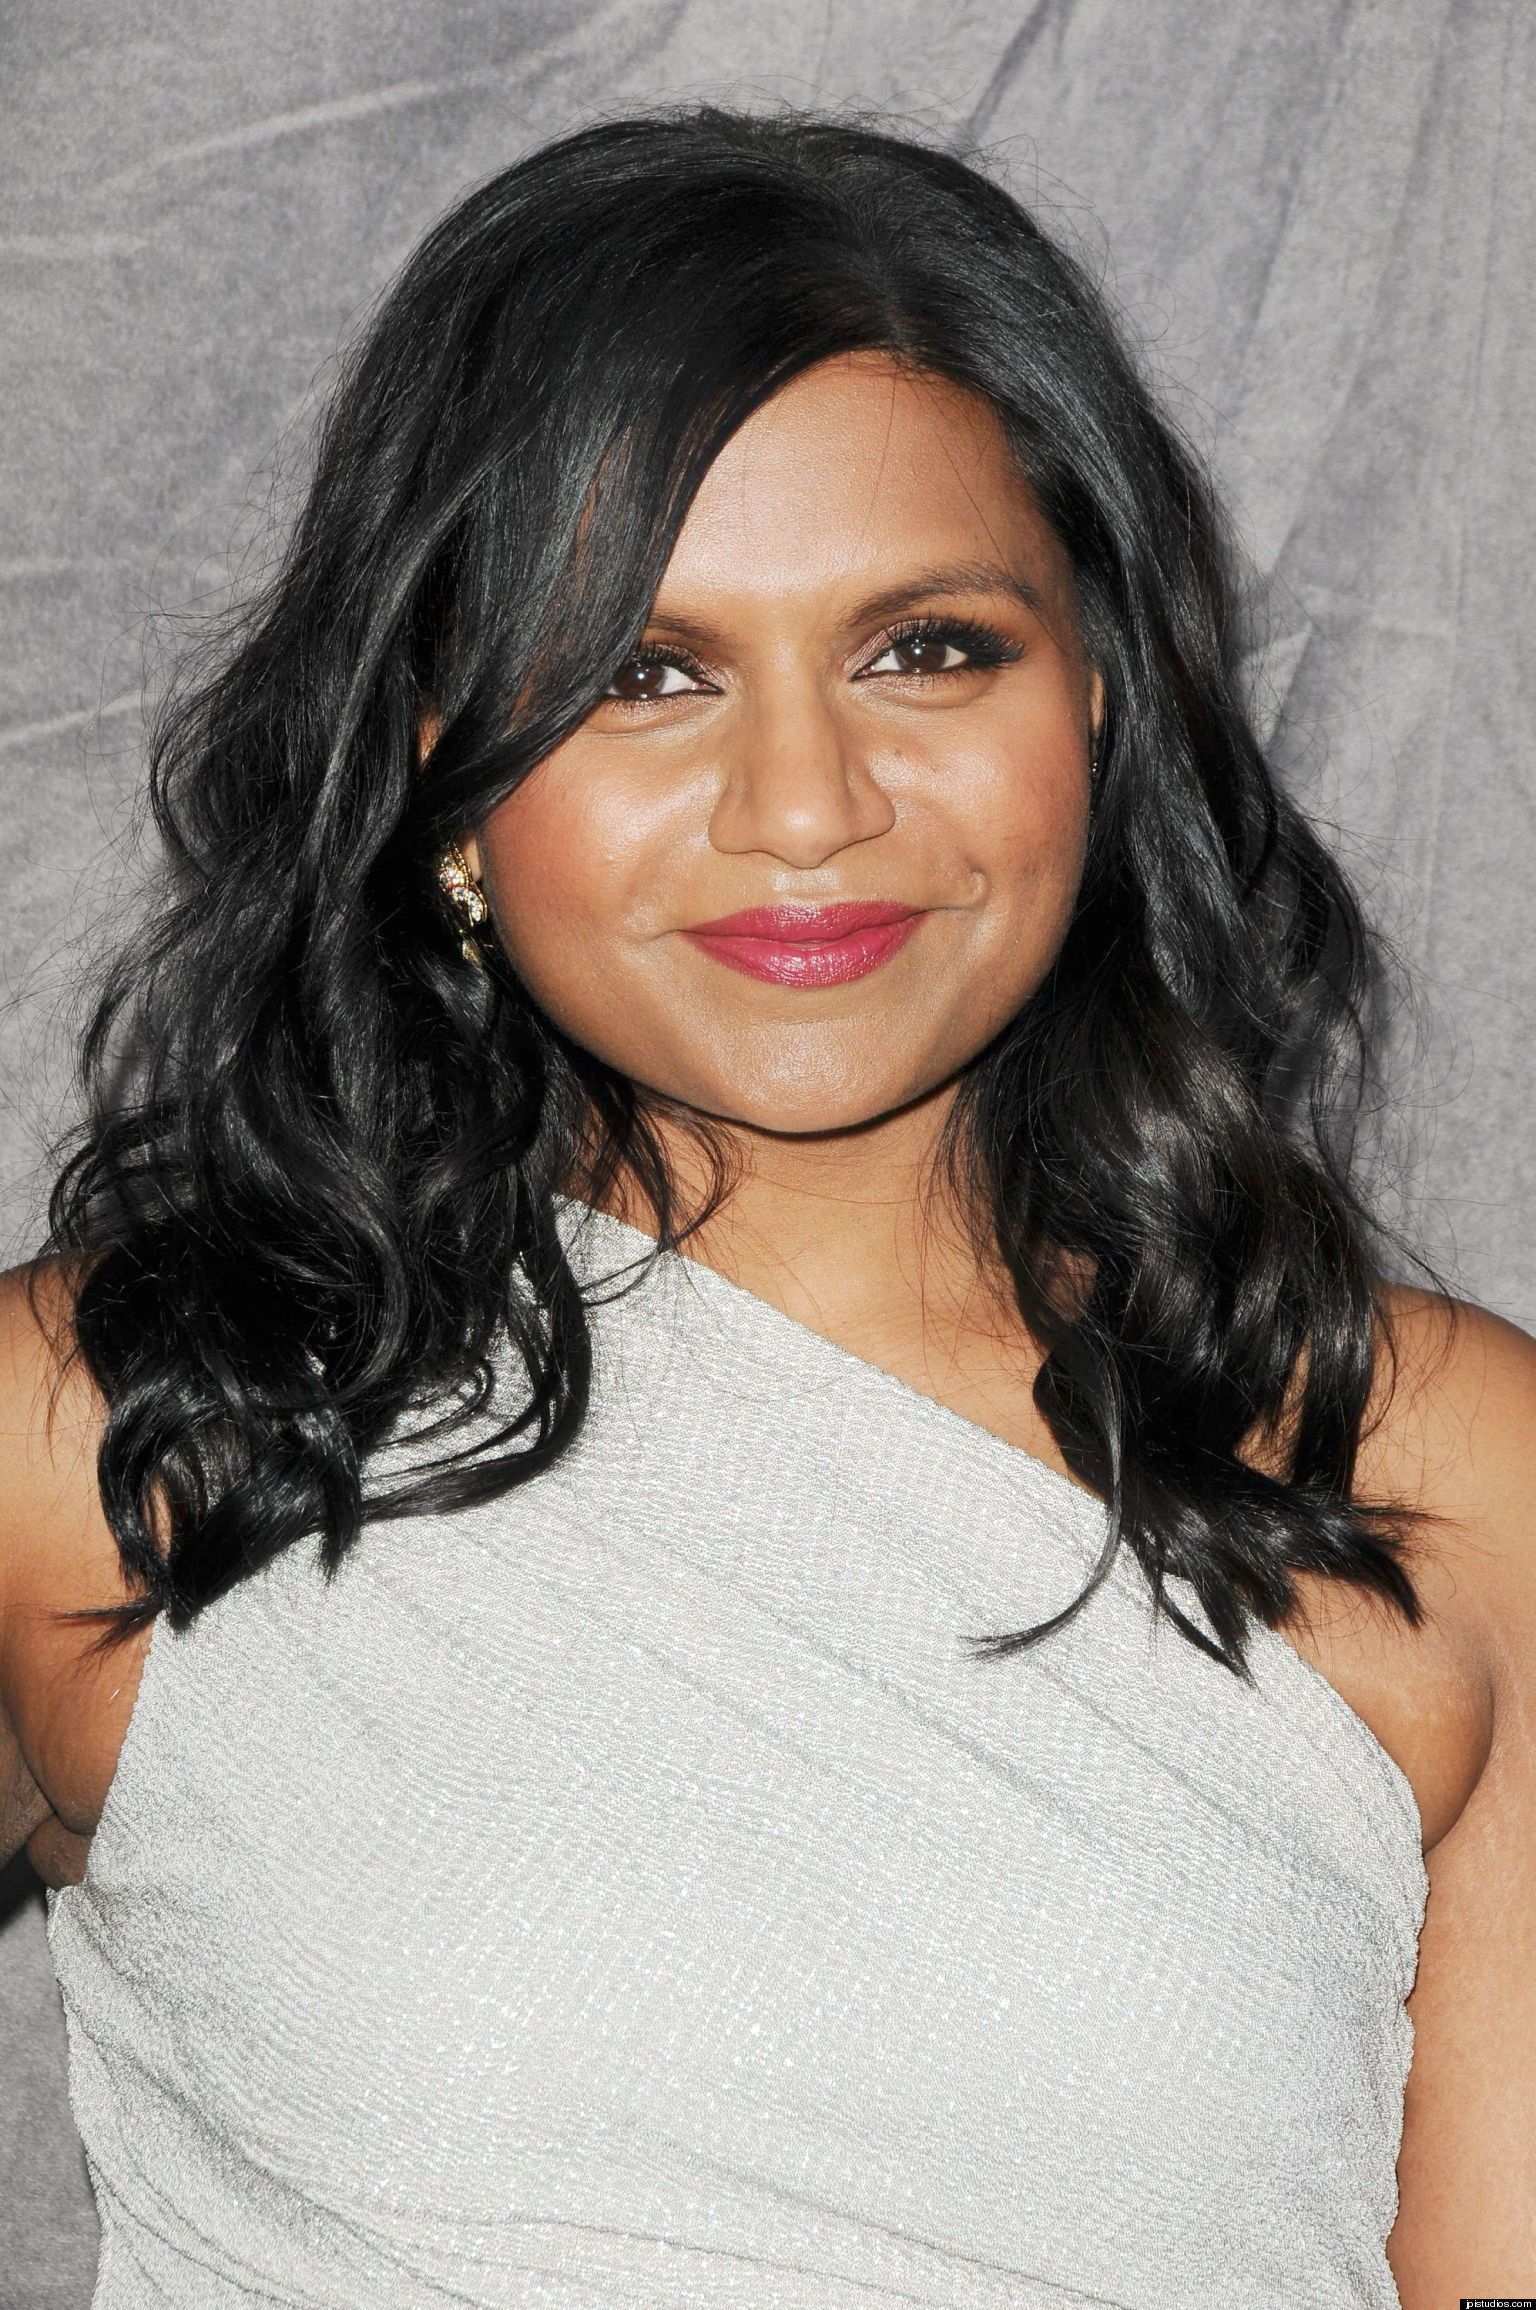 7 Reasons We Love Mindy Kaling Hairstyles For Round Faces Hair Styles Round Face